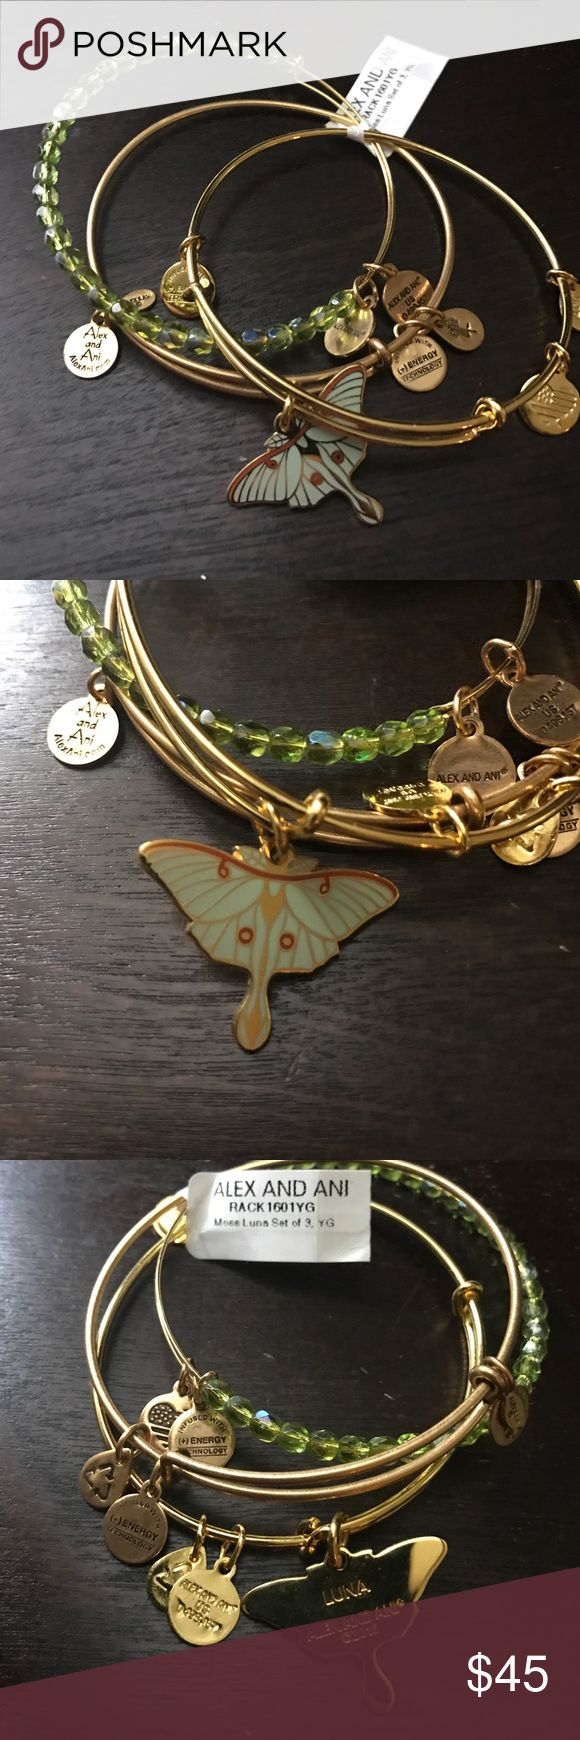 Alex and Ani bundle Alex and Ani set of 3 bracelets. One is a beaded moss color, one is gold with the Alex and Ani logos and lastly is a beautiful shiny gold Luna moth with beautiful detailing. And retired snowflake bracelet set. All are new with retail tags Alex & Ani Jewelry Bracelets